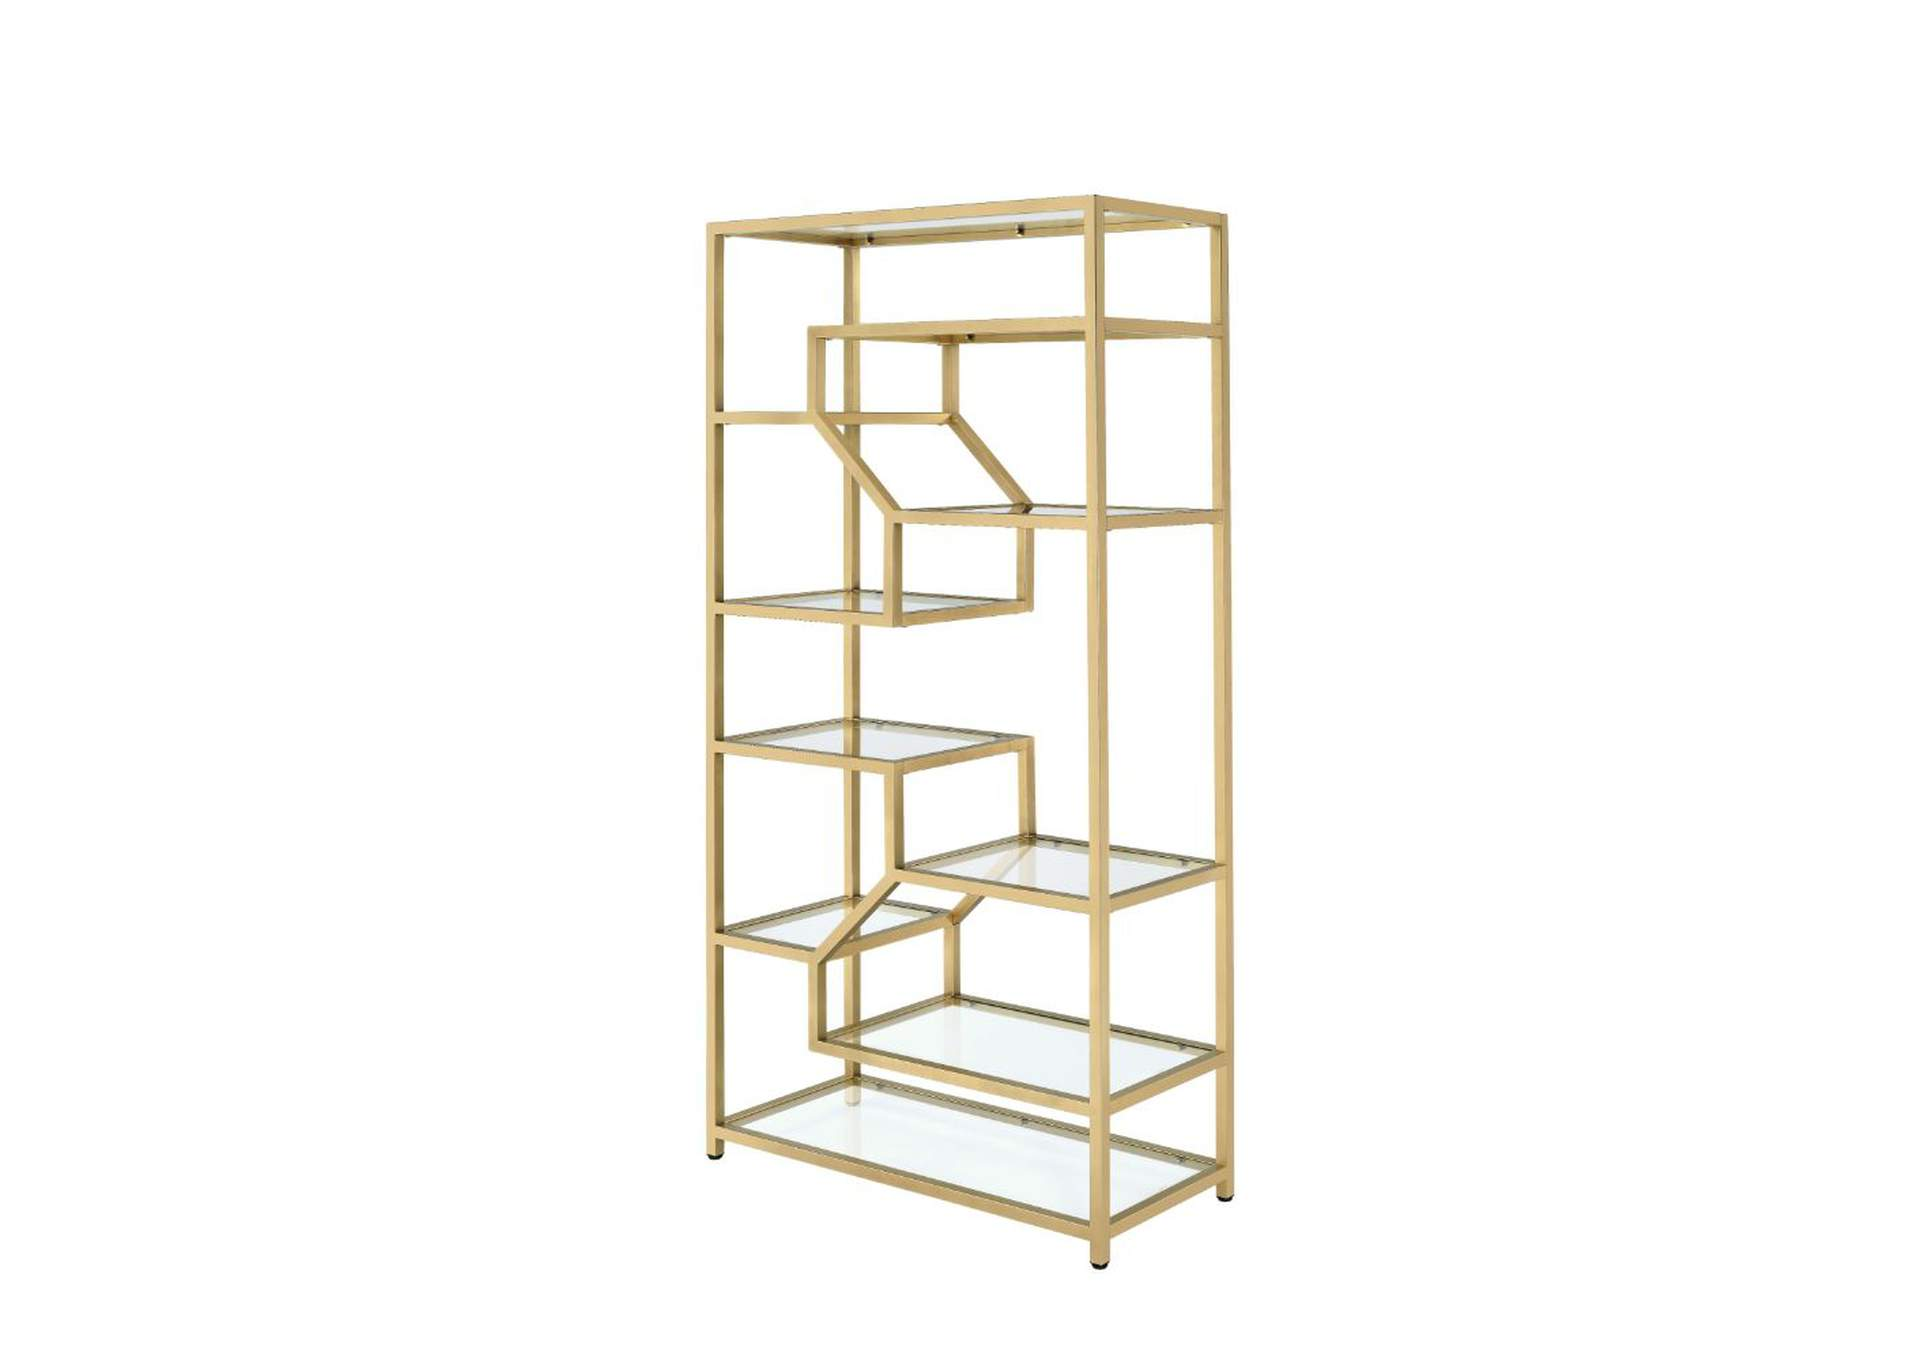 Lecanga Gold Bookshelf,Acme